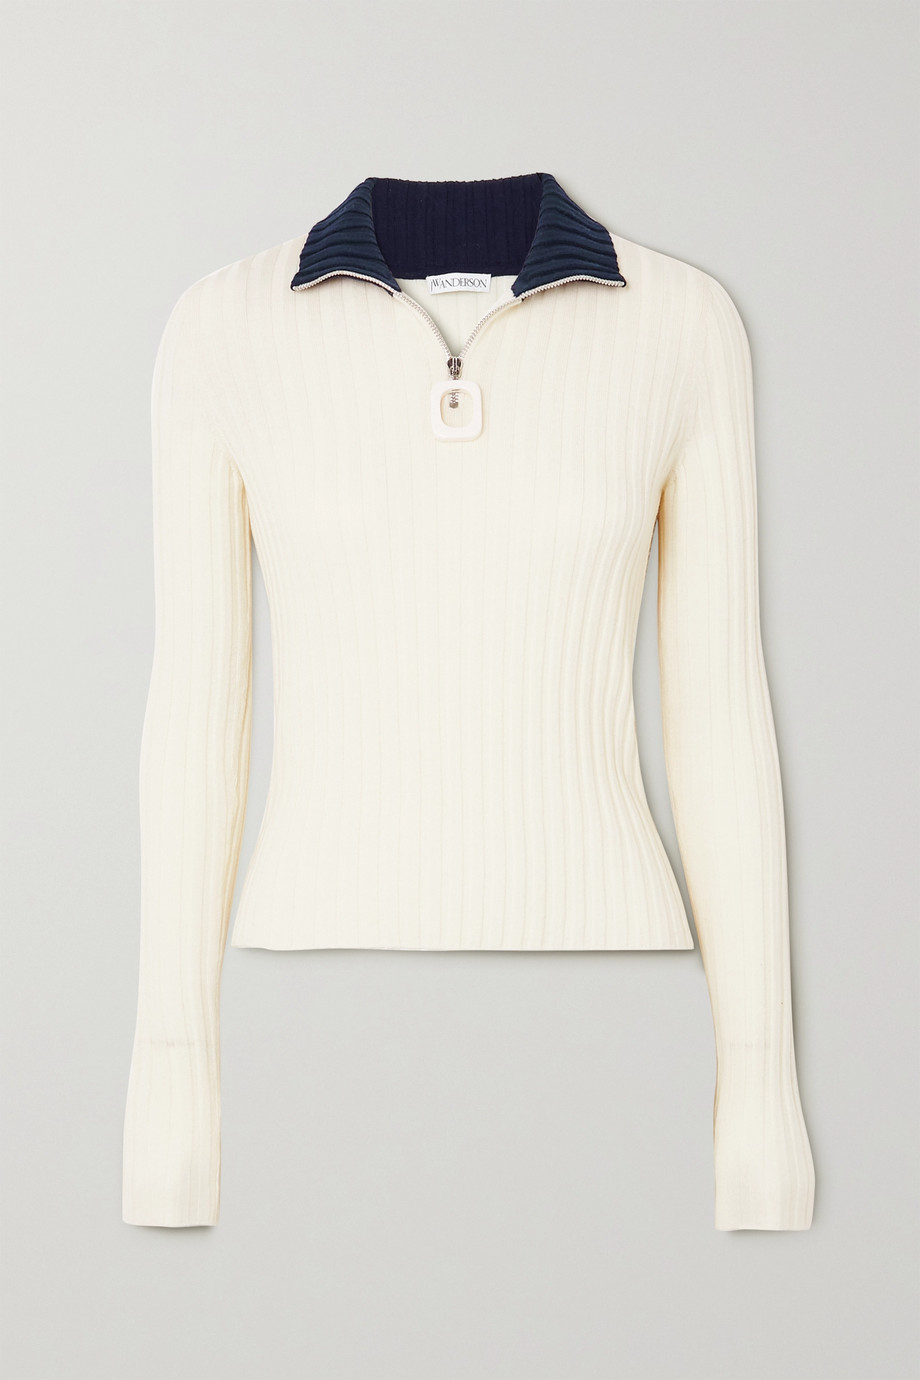 JW Anderson Infinity two-tone ribbed merino wool sweater